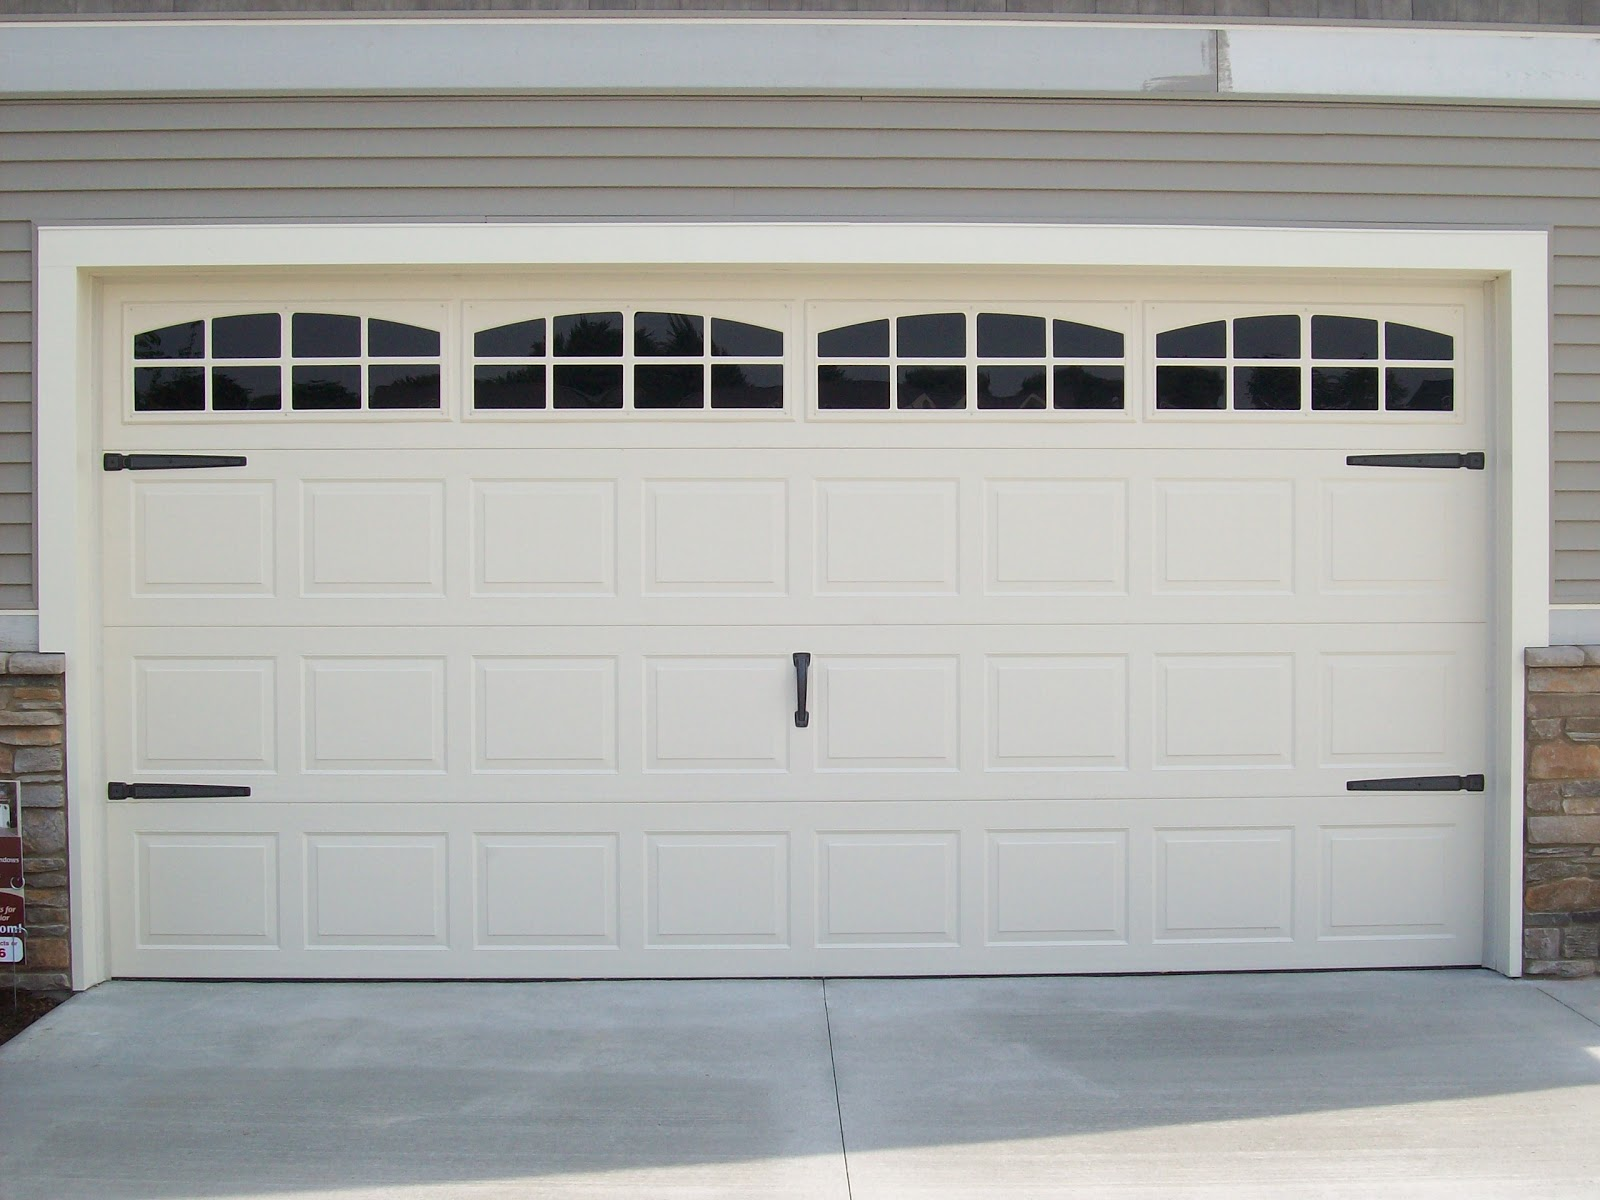 1200 #776D54  House Accents: Makeover Your Garage Door With Coach House Accents picture/photo Garages Doors 36391600